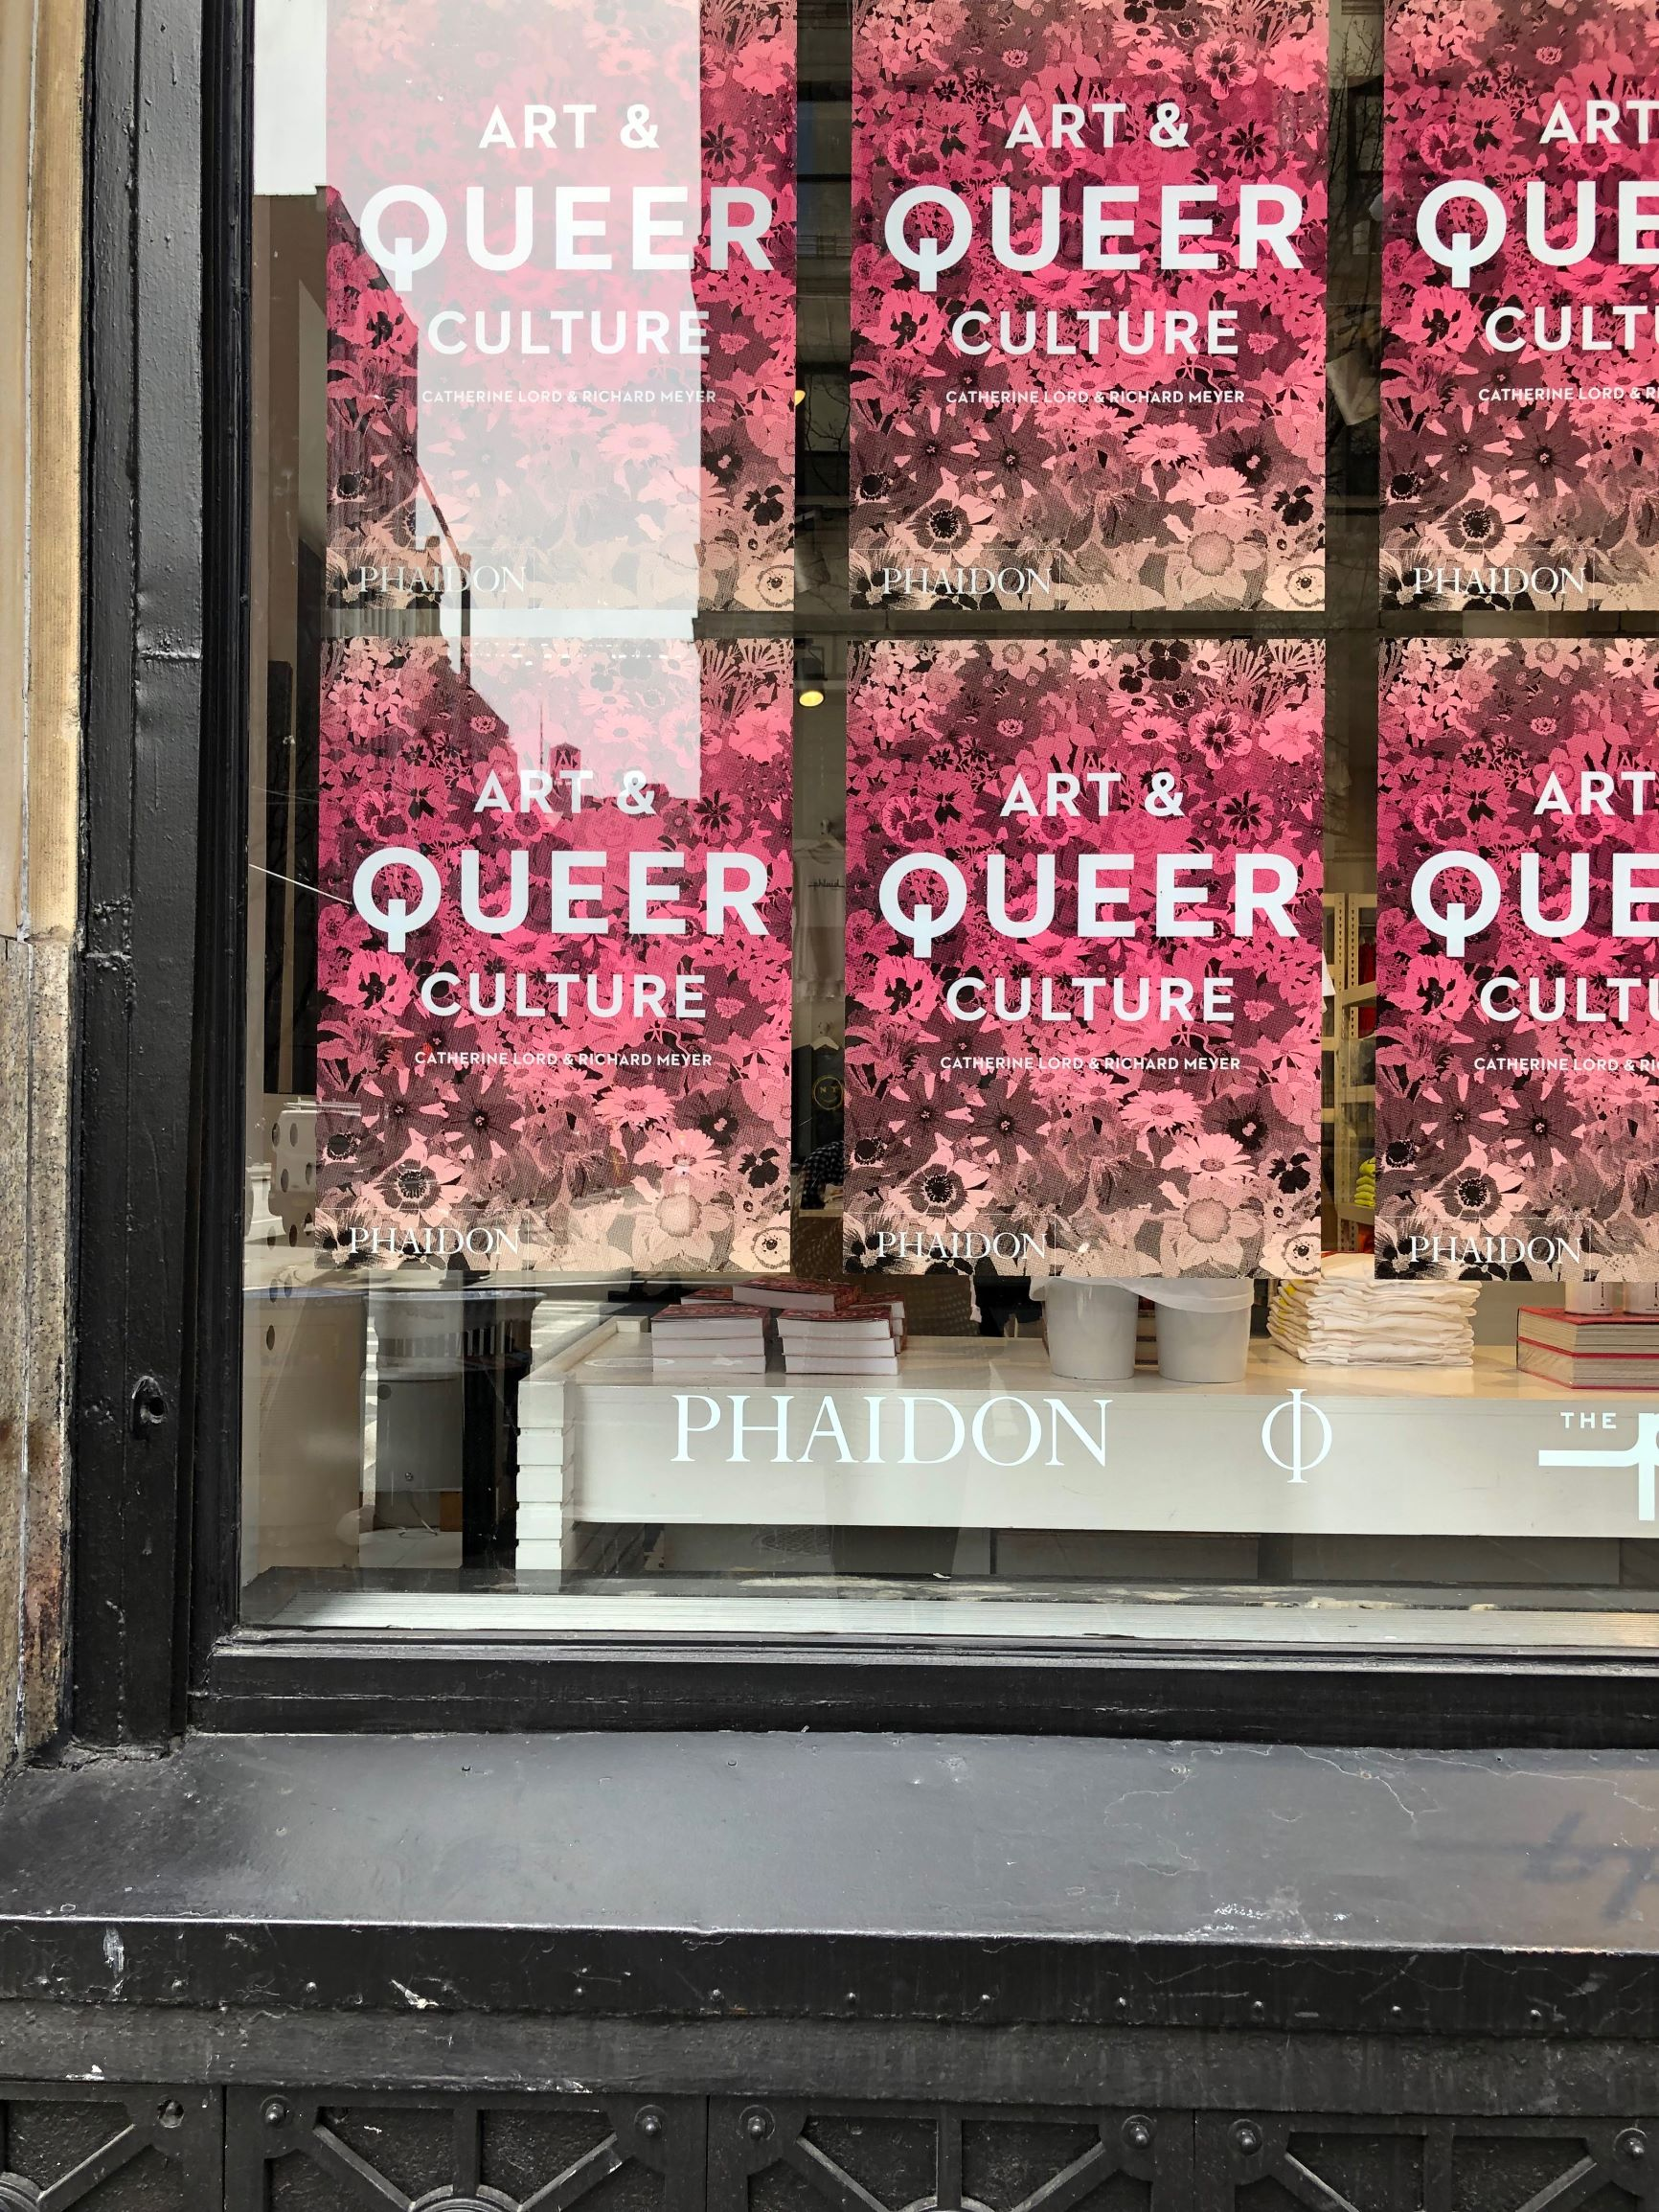 Art & Queer Culture on display in the windows of The Phluid Project, Manhattan